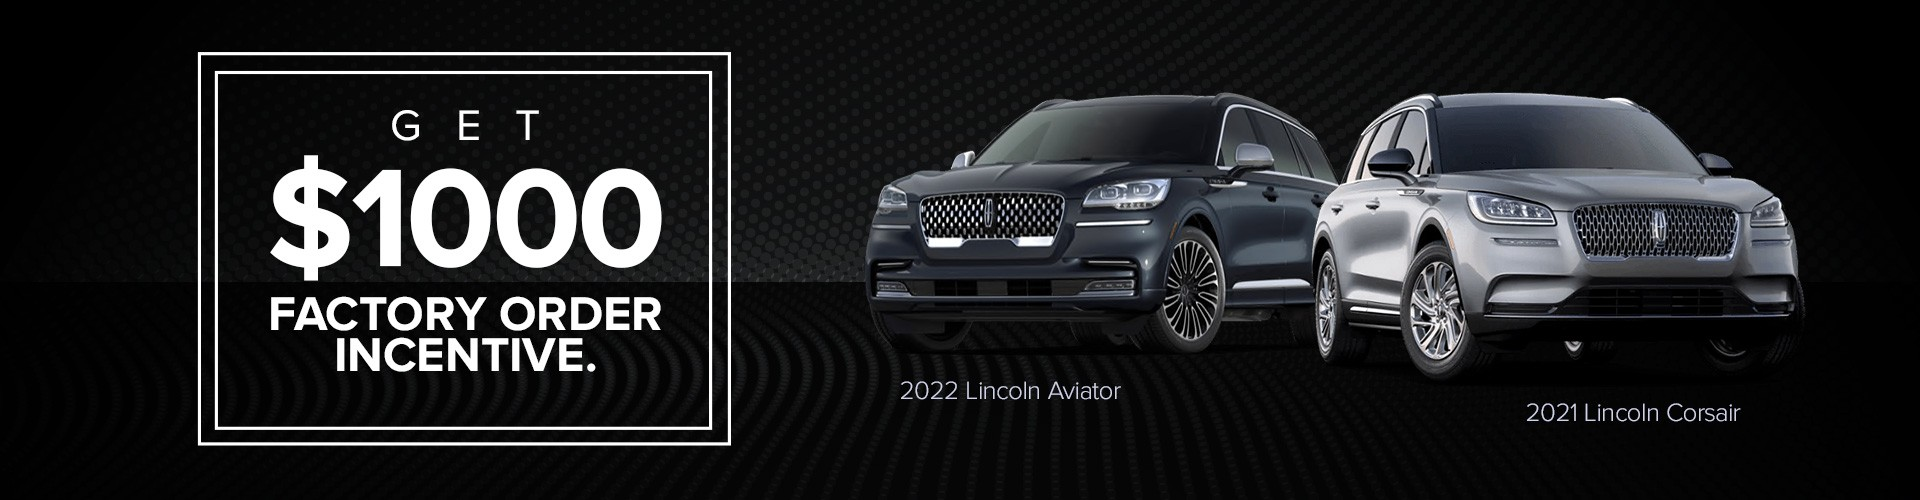 Lincoln Factory Order Incentive